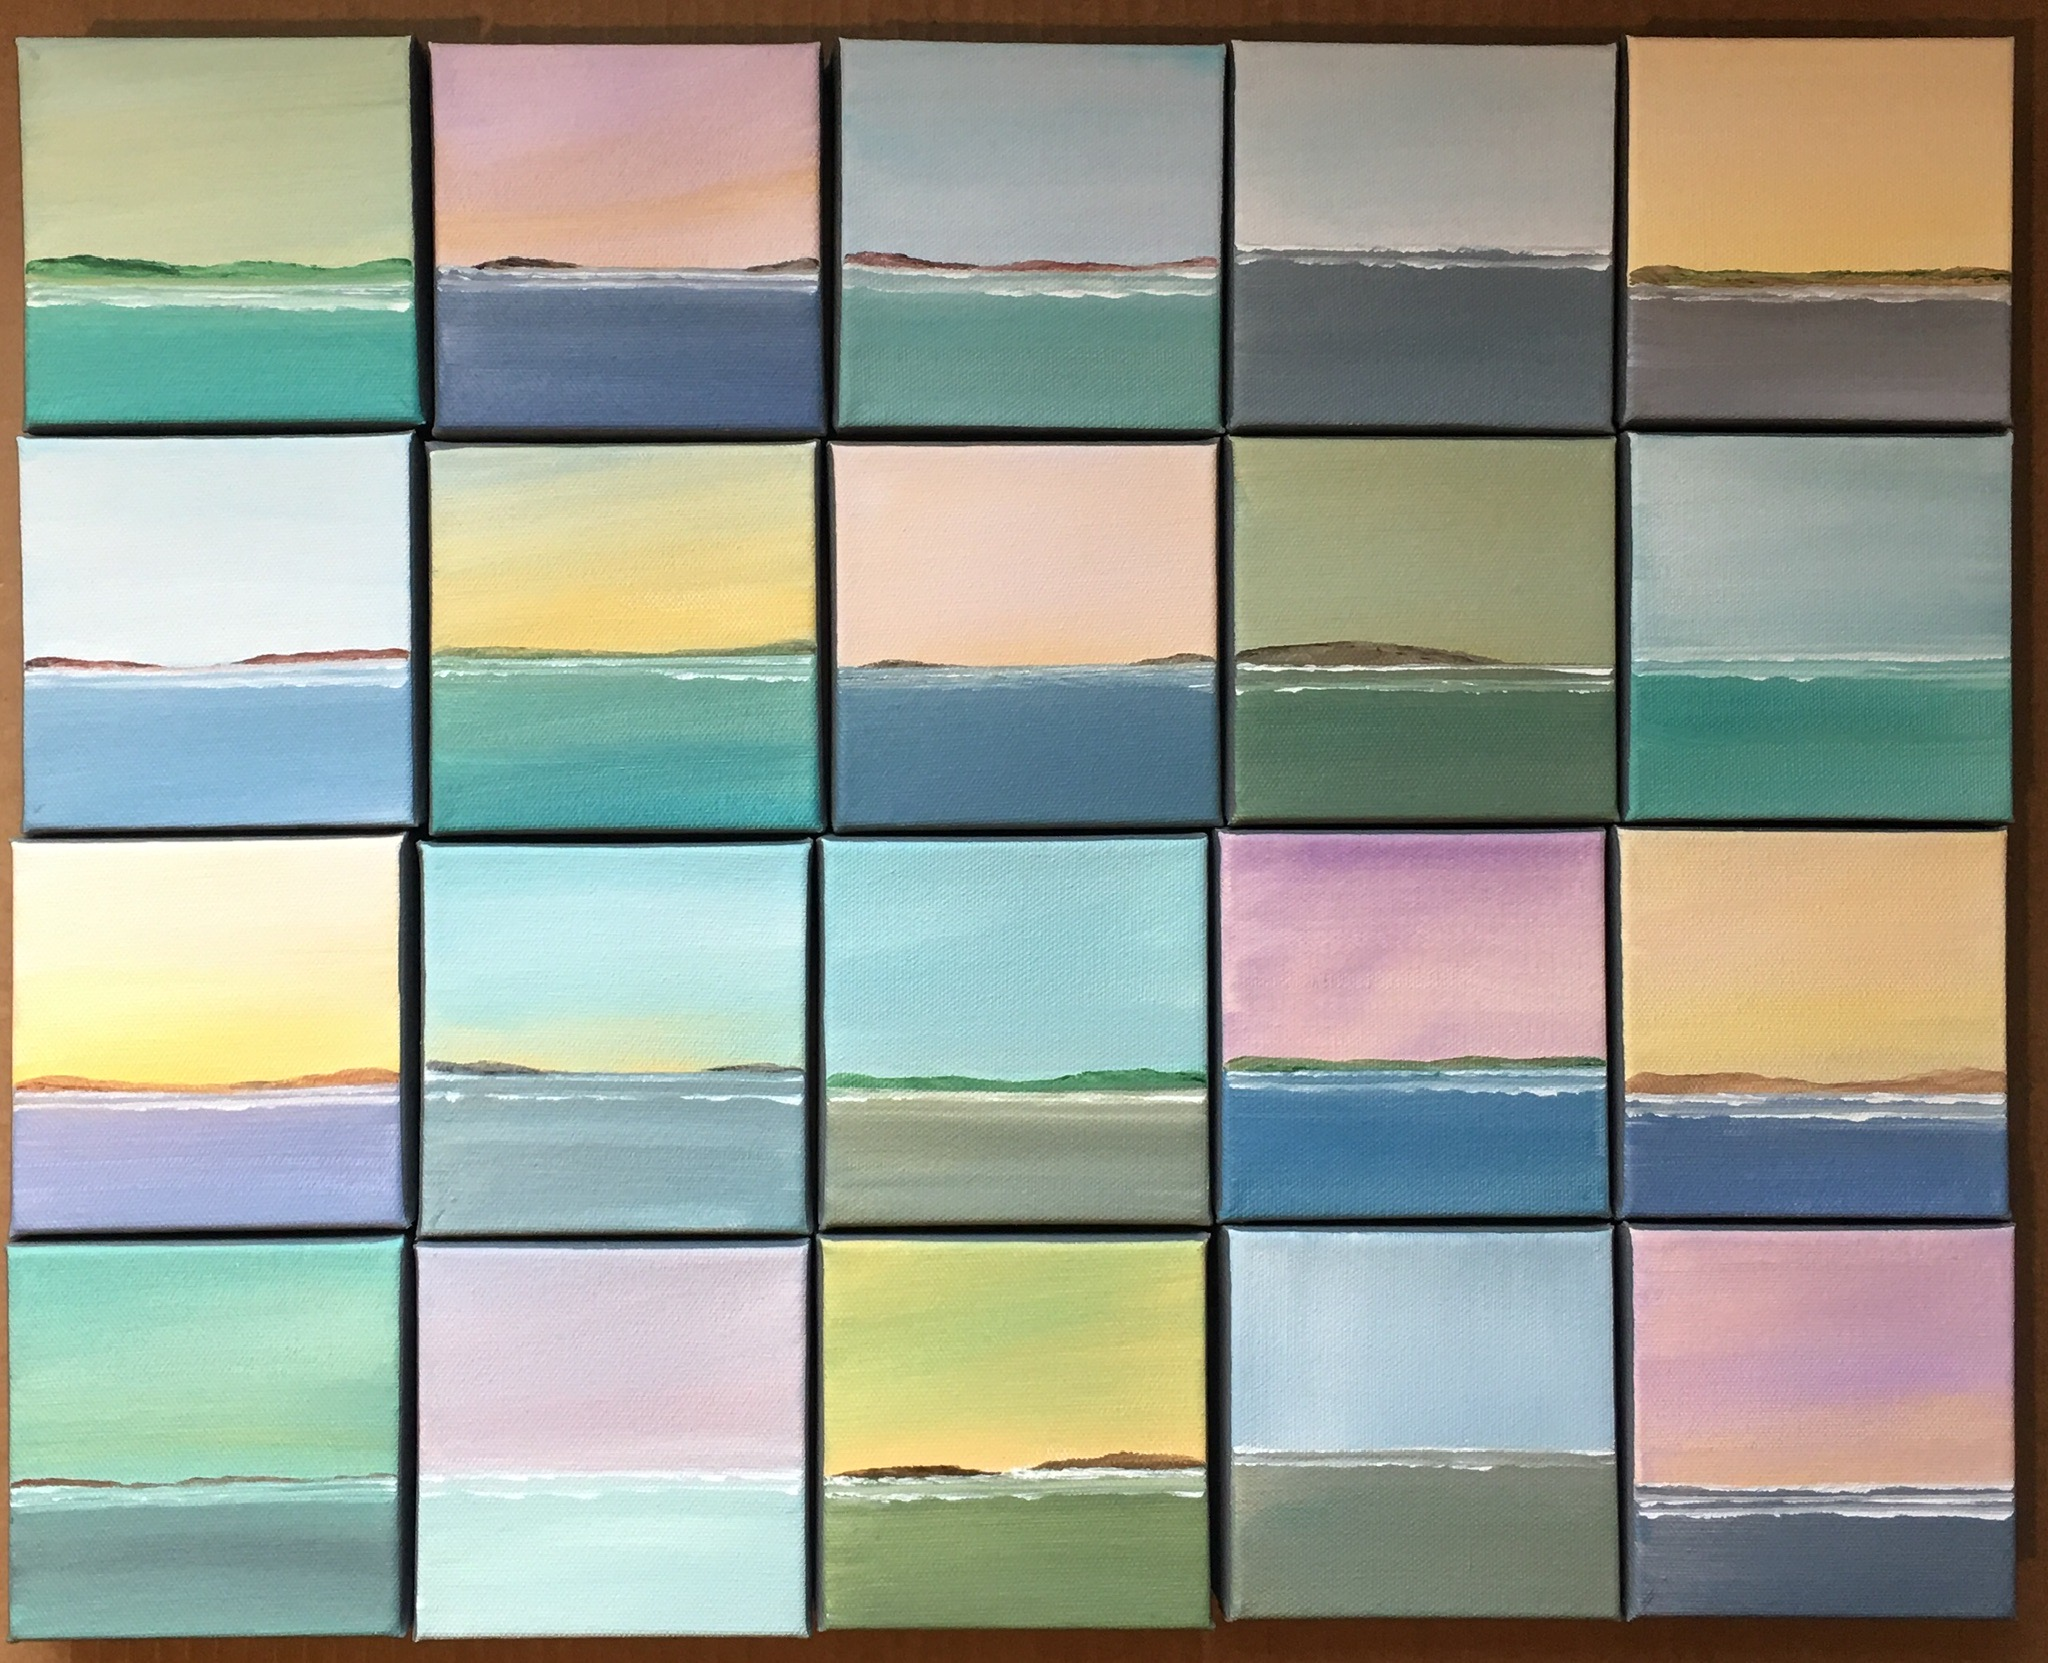 A collection of canvases by Becky O'Toole #interview #creativity #coastal #seascapes